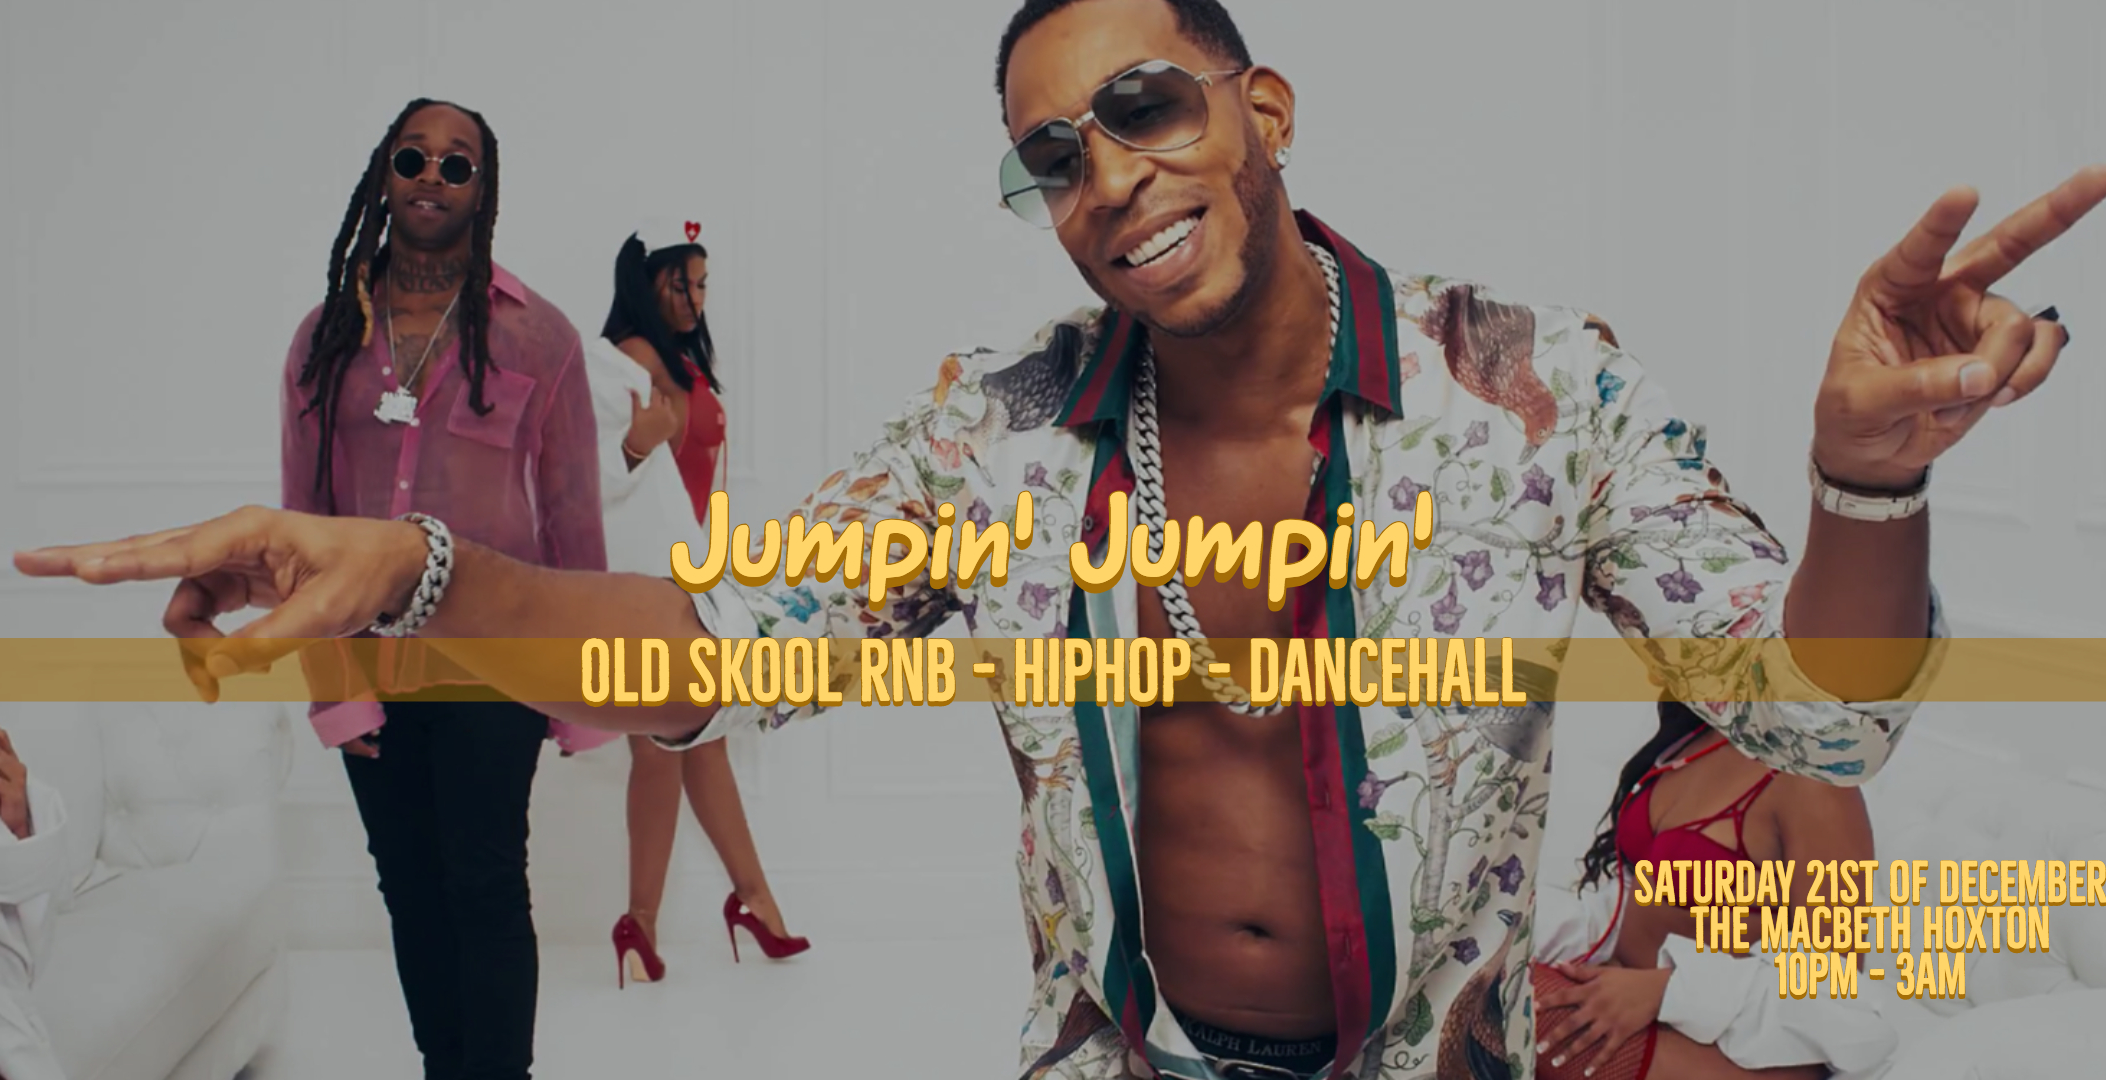 Jumpin' Jumpin' - Old Skool RnB, Hip-Hop & Trap